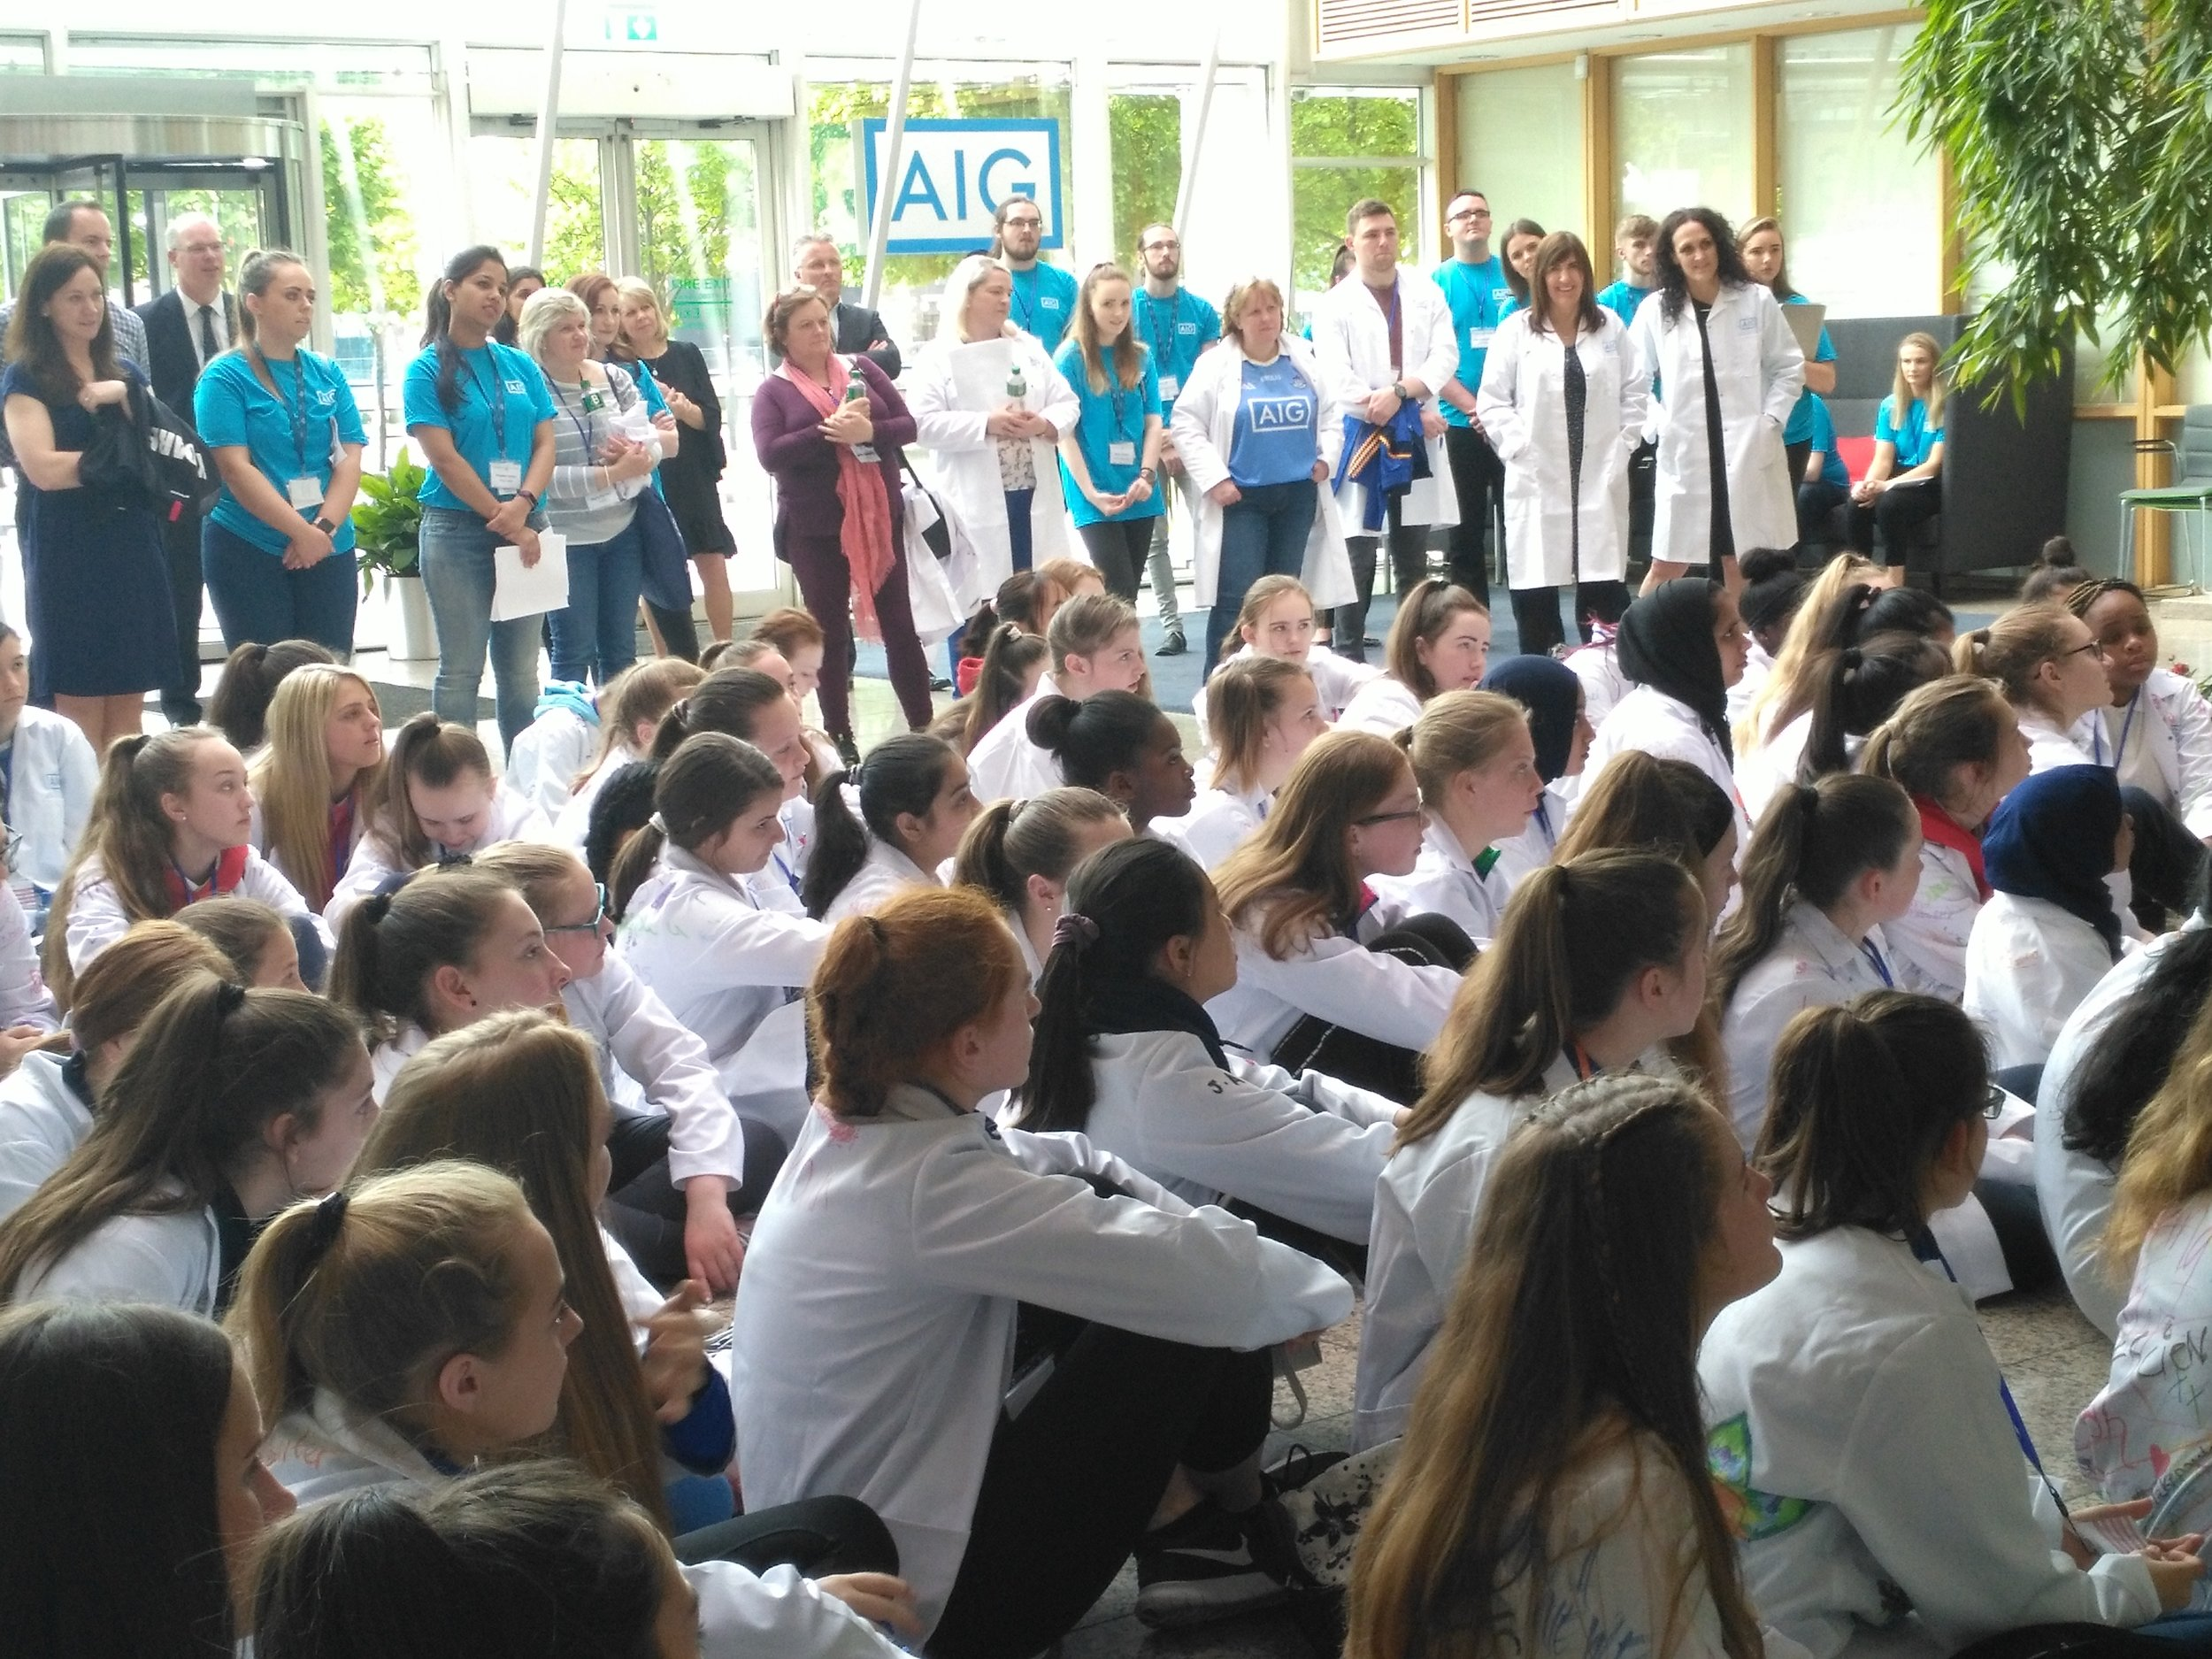 g4g@work at AIG in Dublin May 2018    In May we had an incredibly fun second event in Dublin, giving 85 girls the opportunity to discover the fun in STEM!